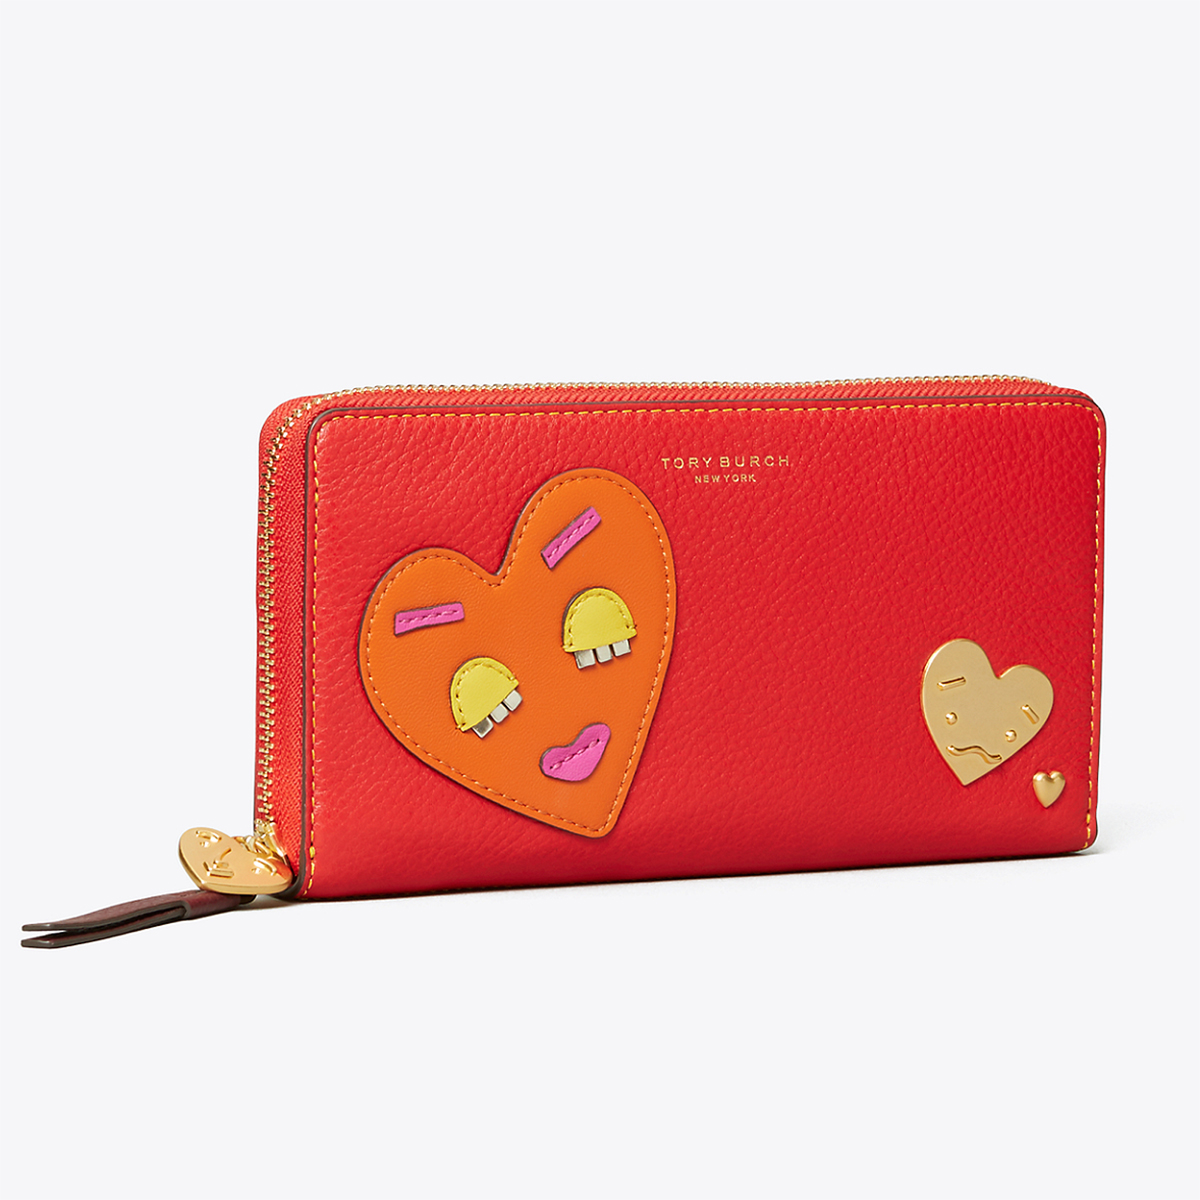 tory-burch-heart-wallet